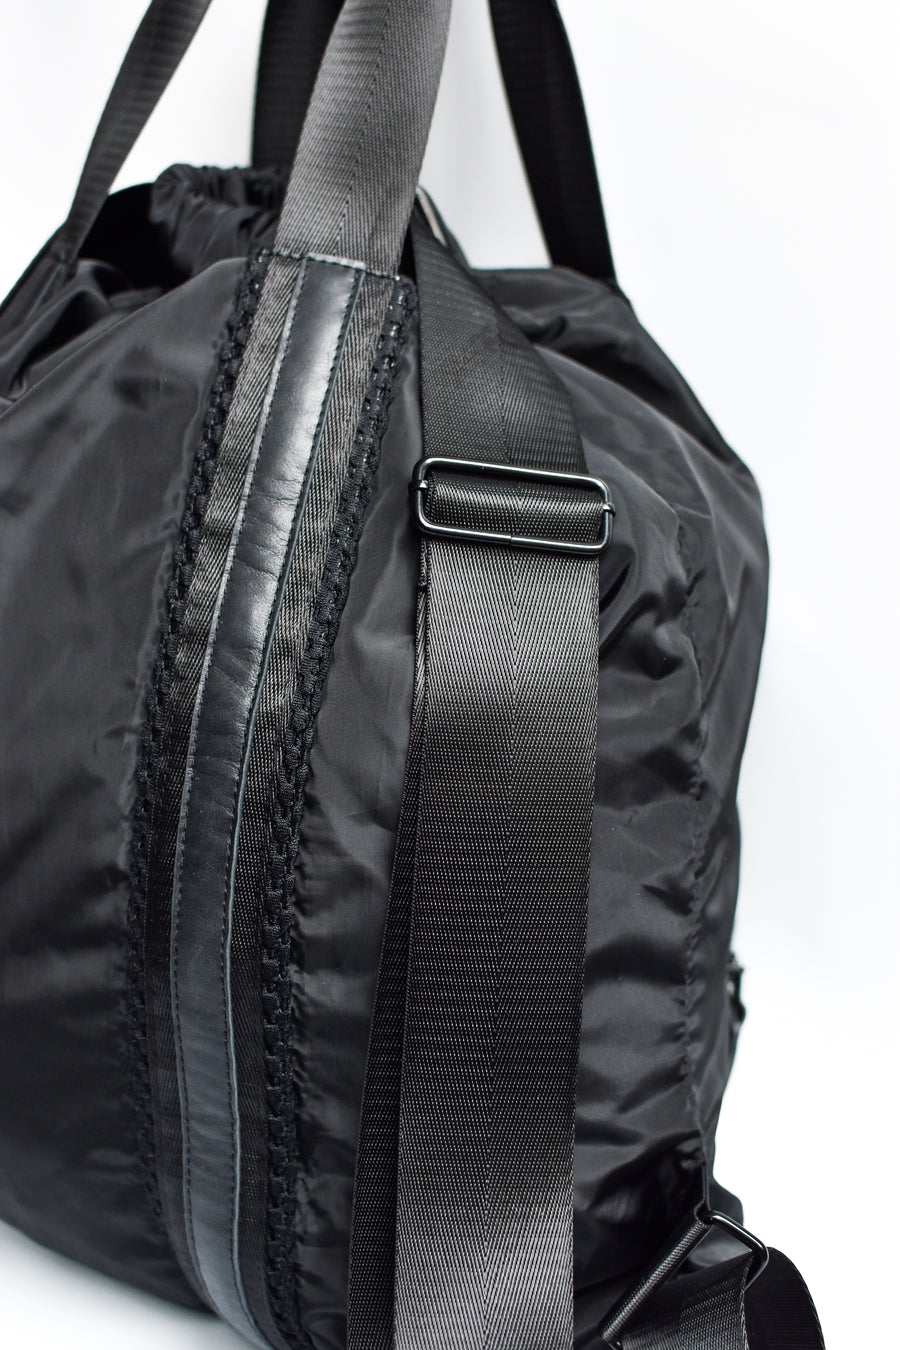 Close up of side detail on black nylon convertible backpack tote with leather details.